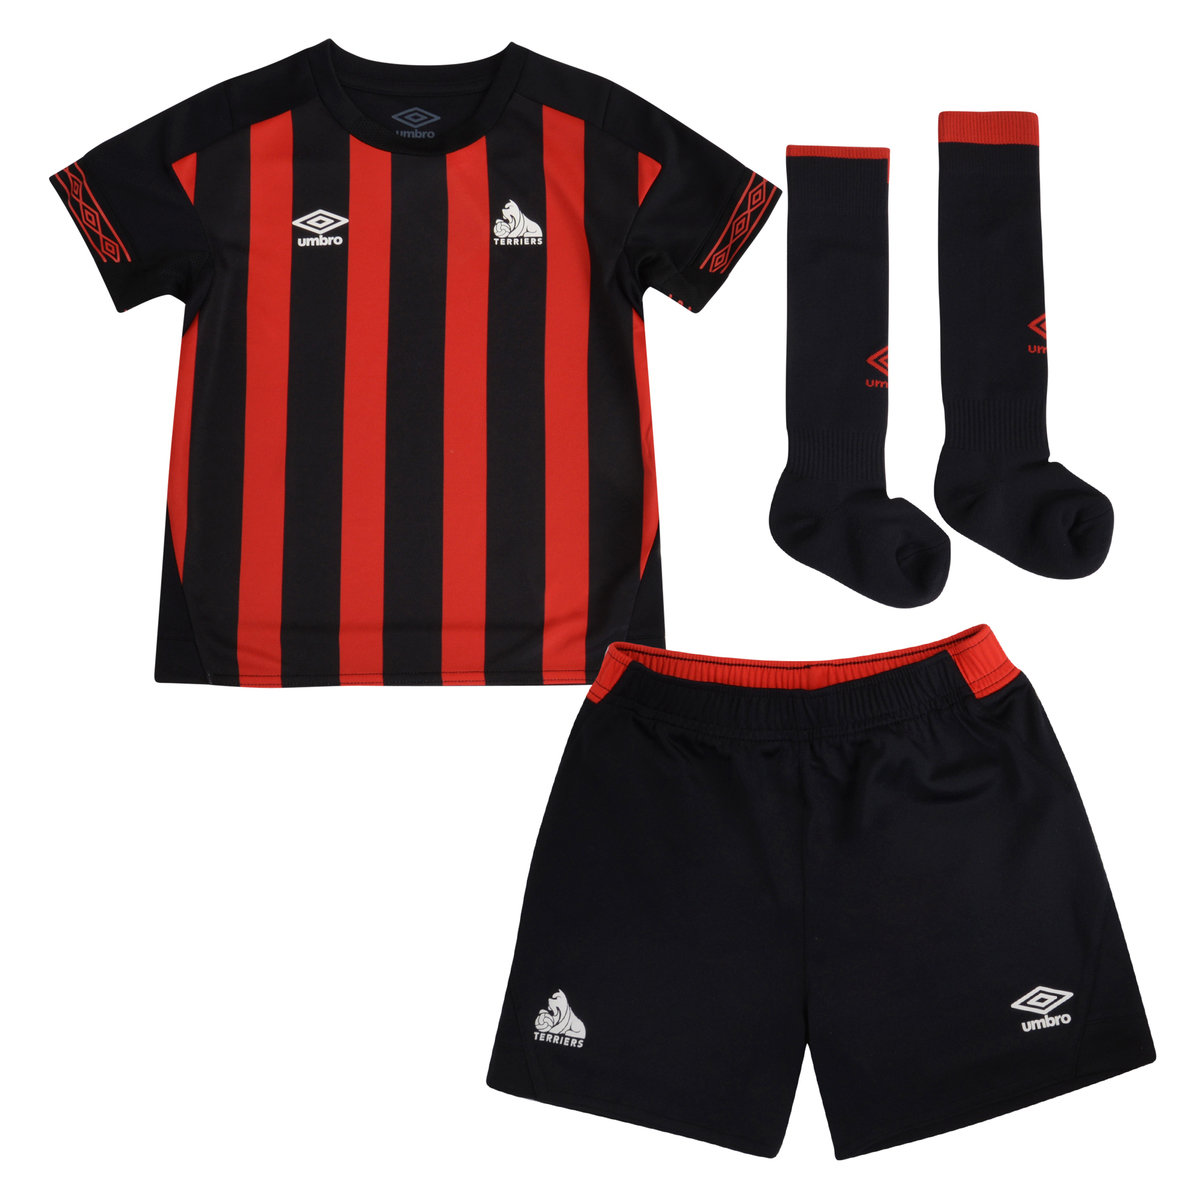 HUDDERSFIELD TOWN 18/19 AWAY INFANT KIT